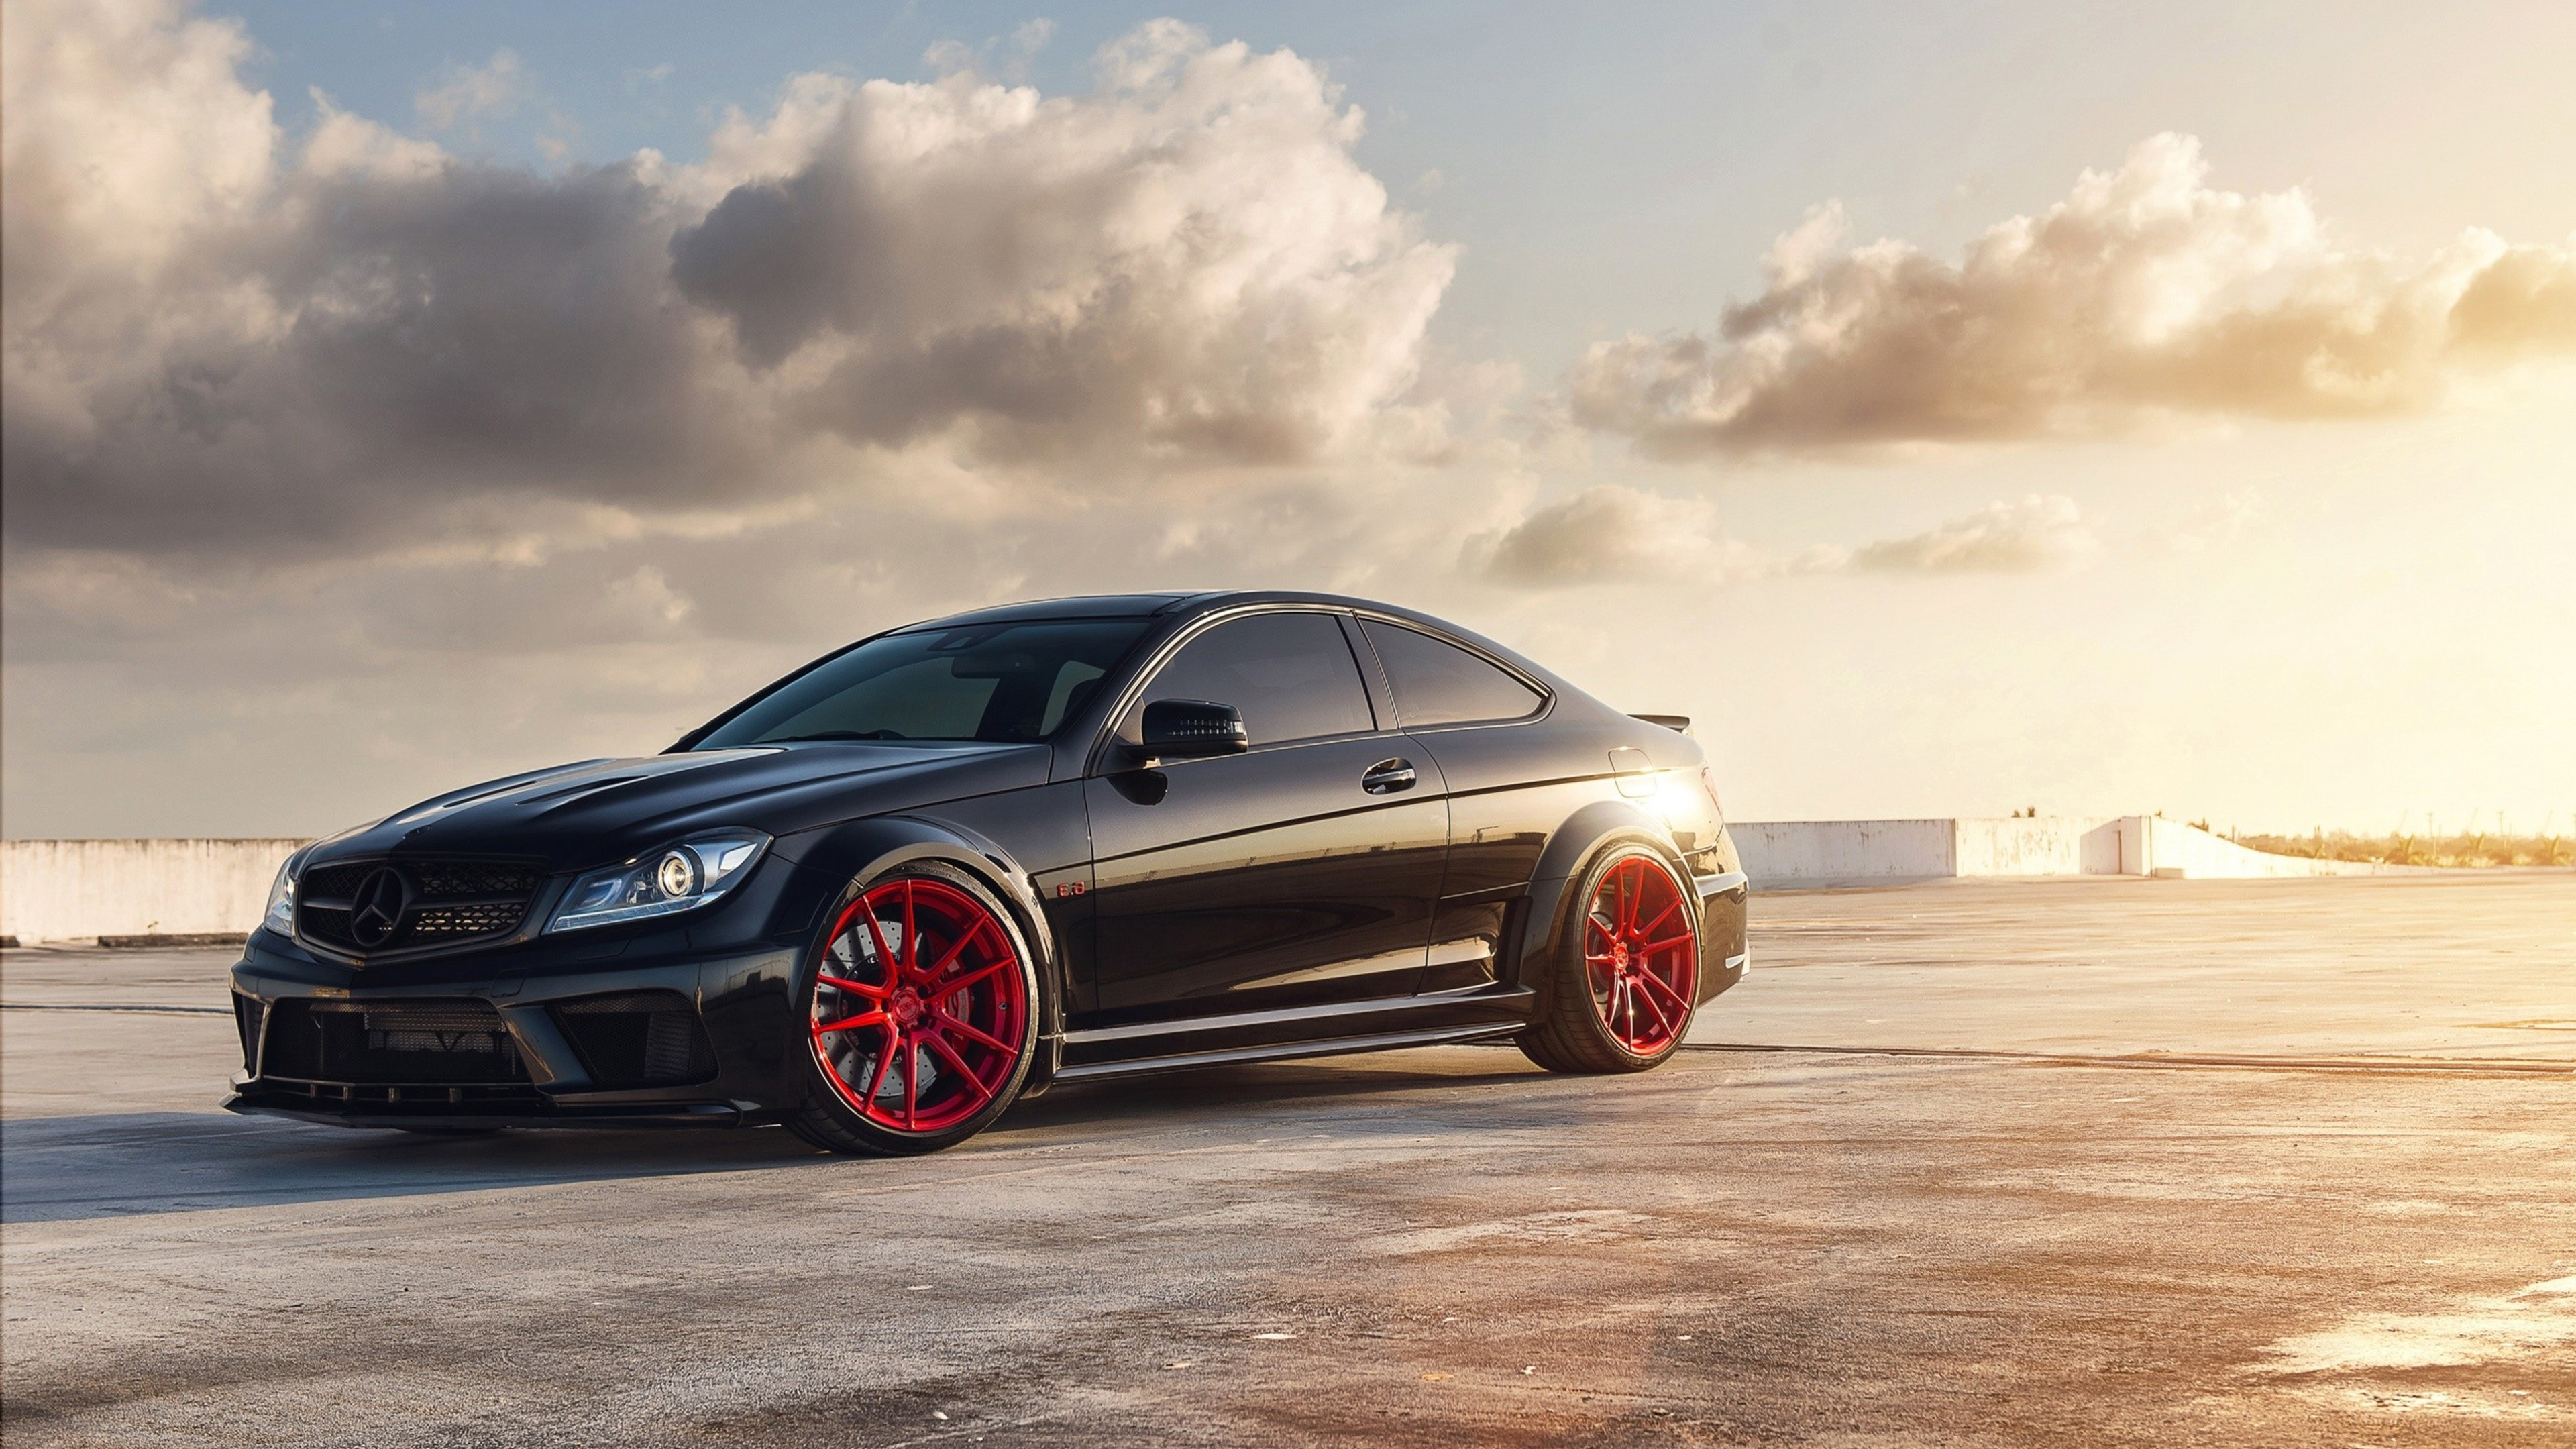 Mercedes Benz C63 Amg Hd Cars 4k Wallpapers Images